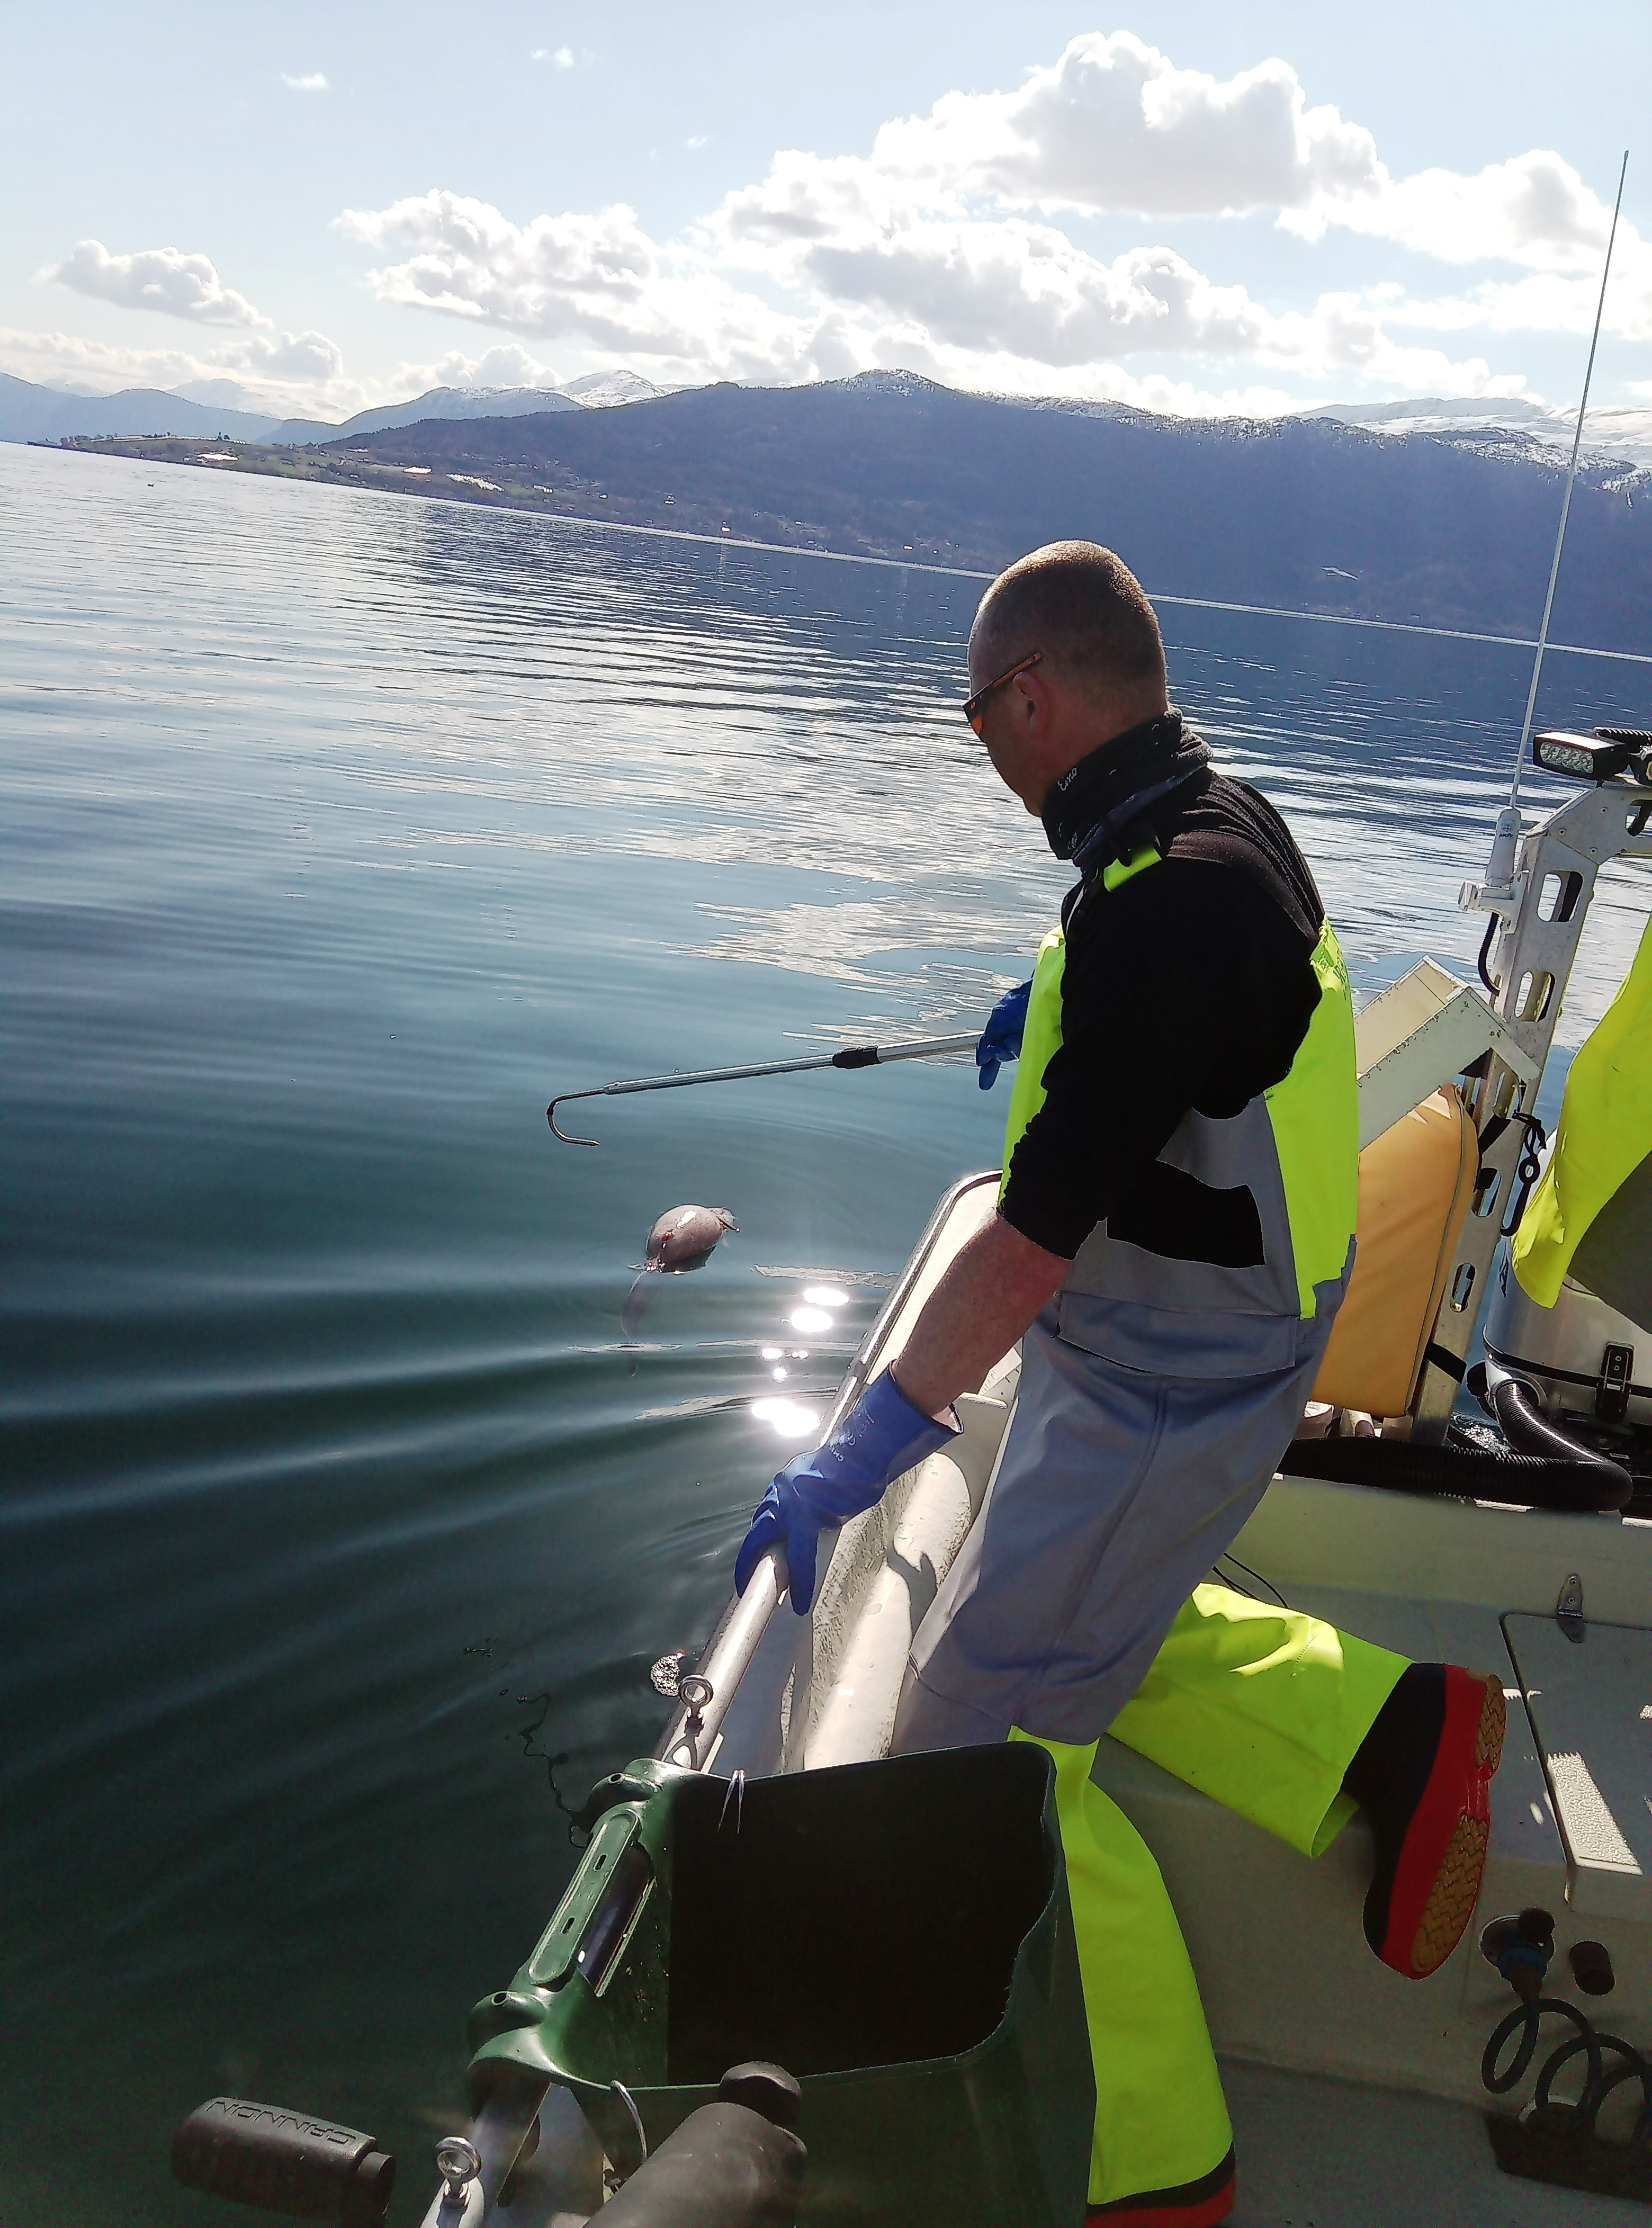 Local fisherman for a day? Try Balestrand Fjord Angling in Sognefjord!